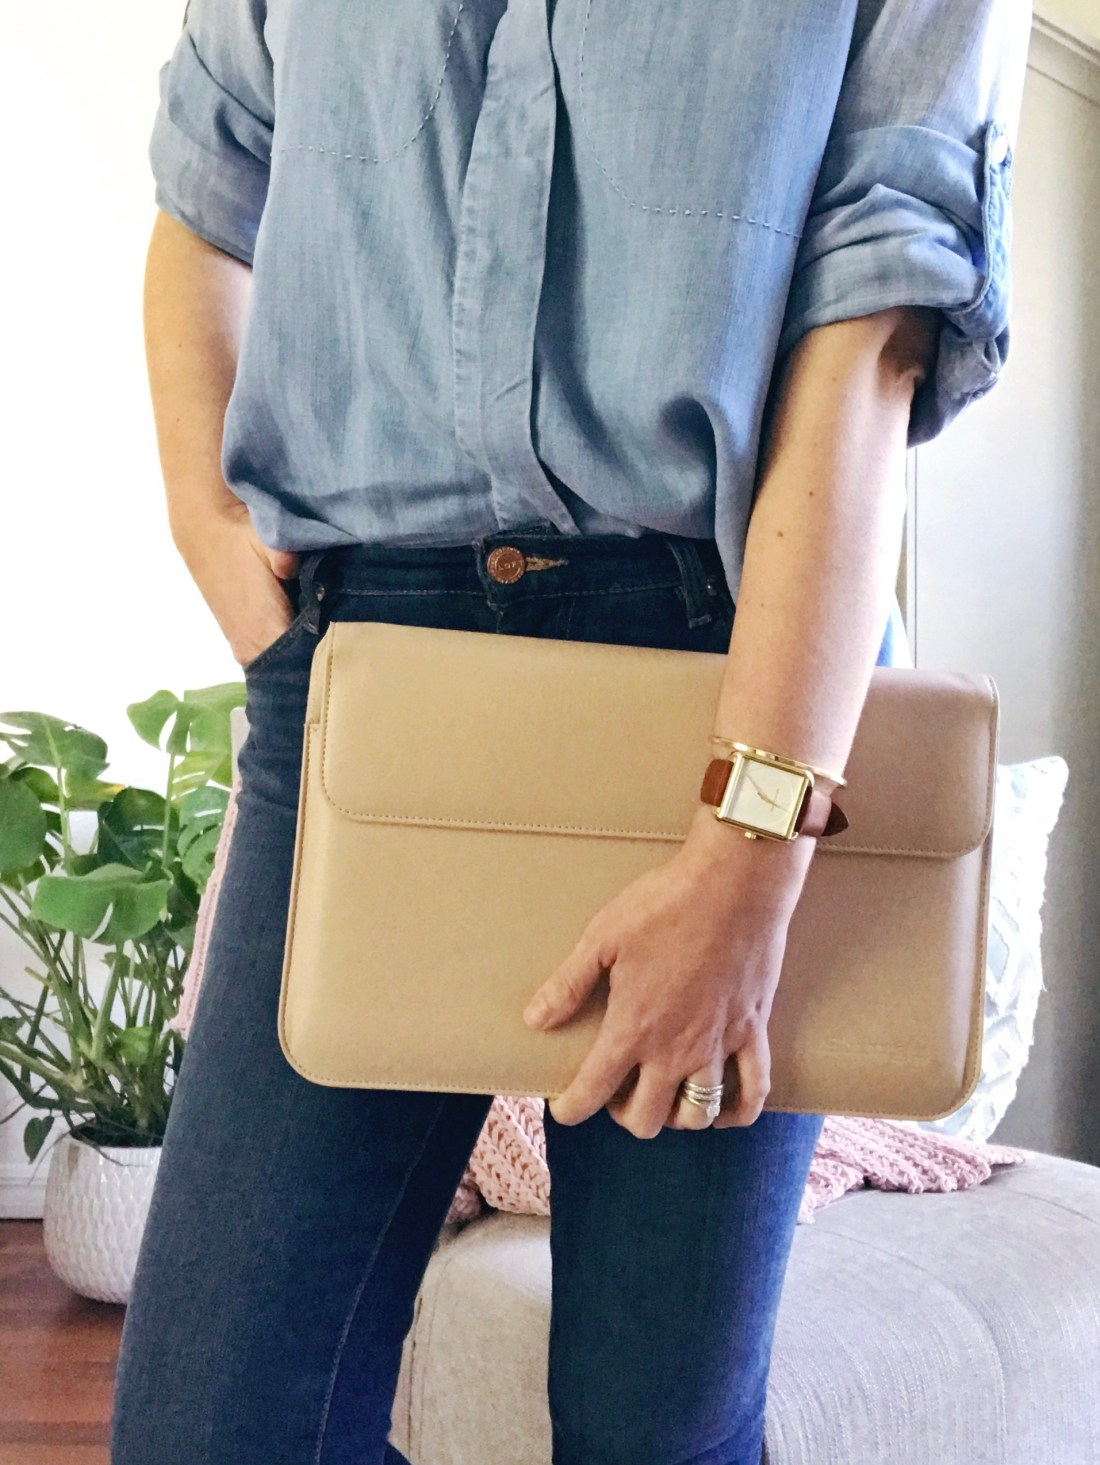 Snugg Nude Leather Macbook Case, Stylish Organization Accessories